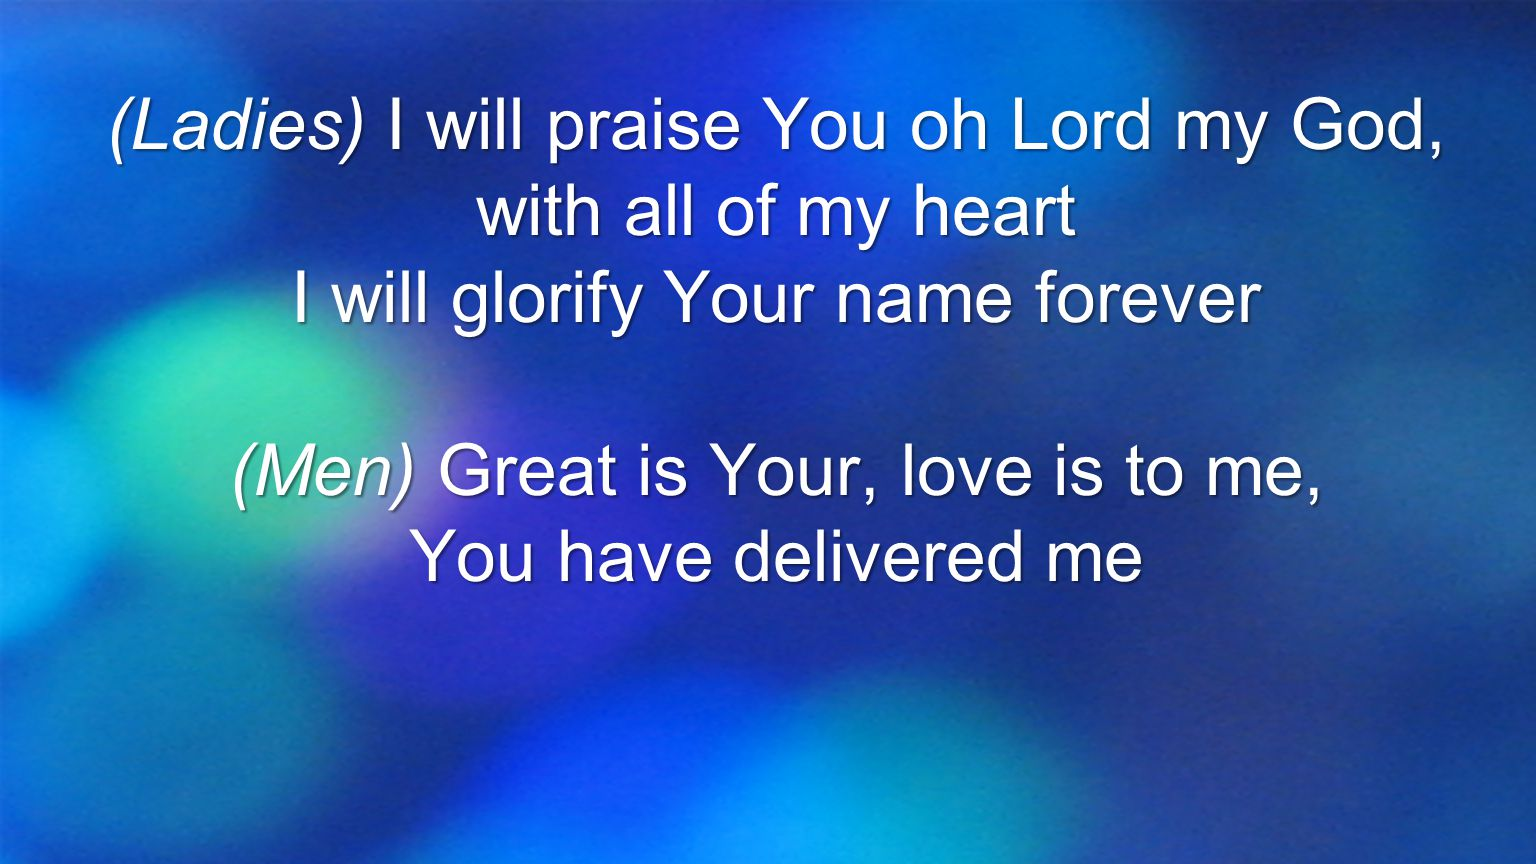 (Ladies) I will praise You oh Lord my God, with all of my heart